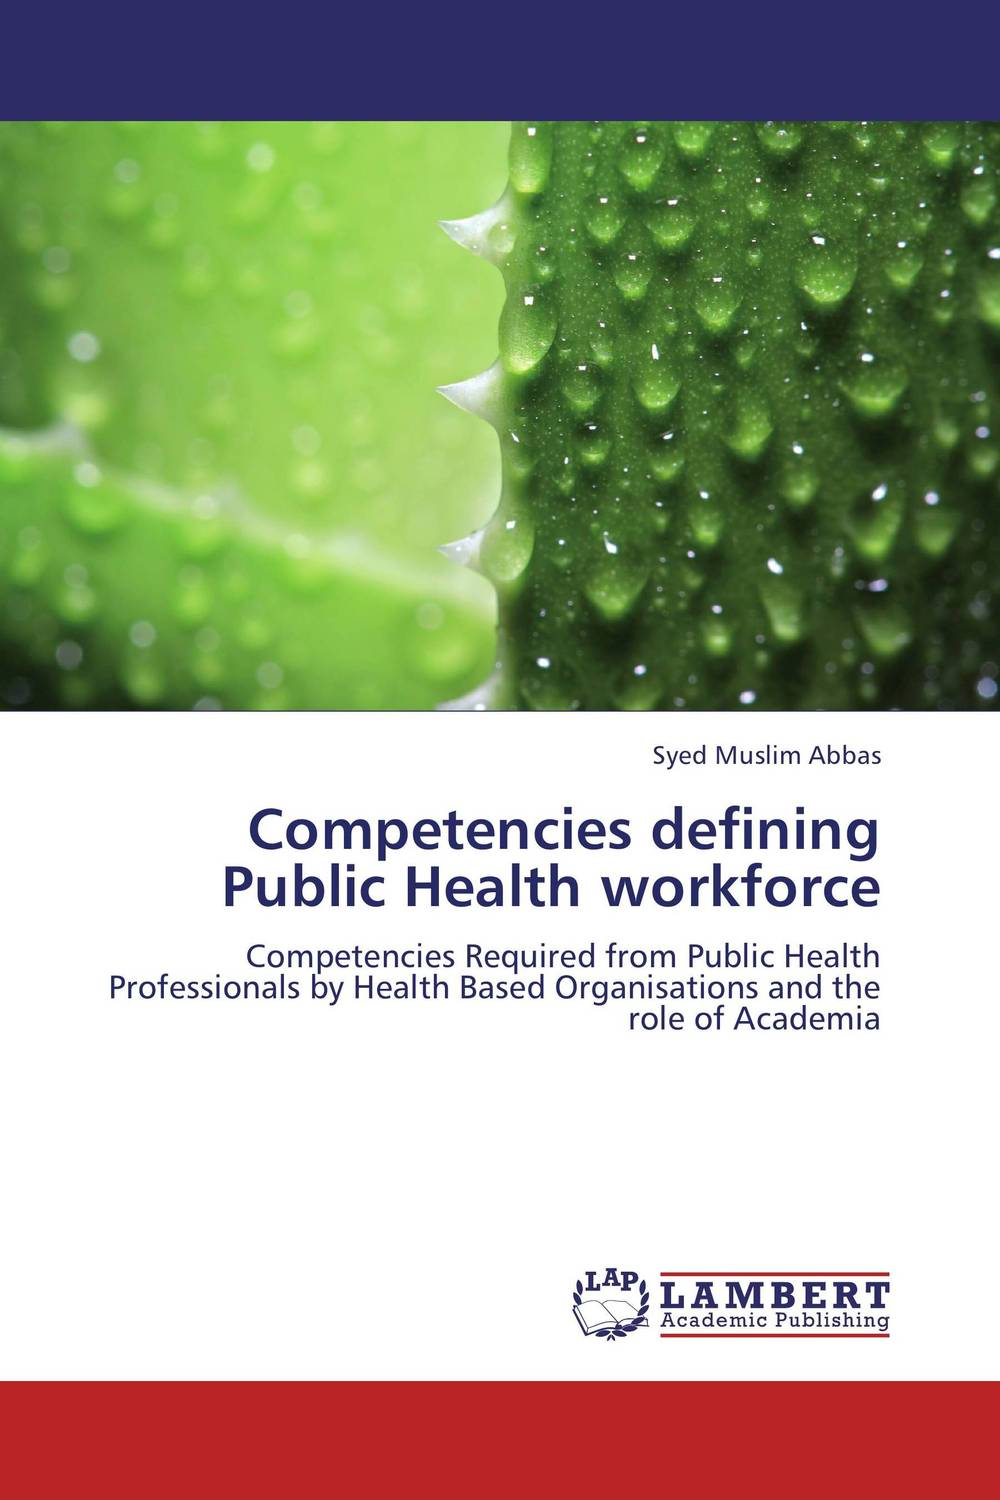 Competencies defining Public Health workforce